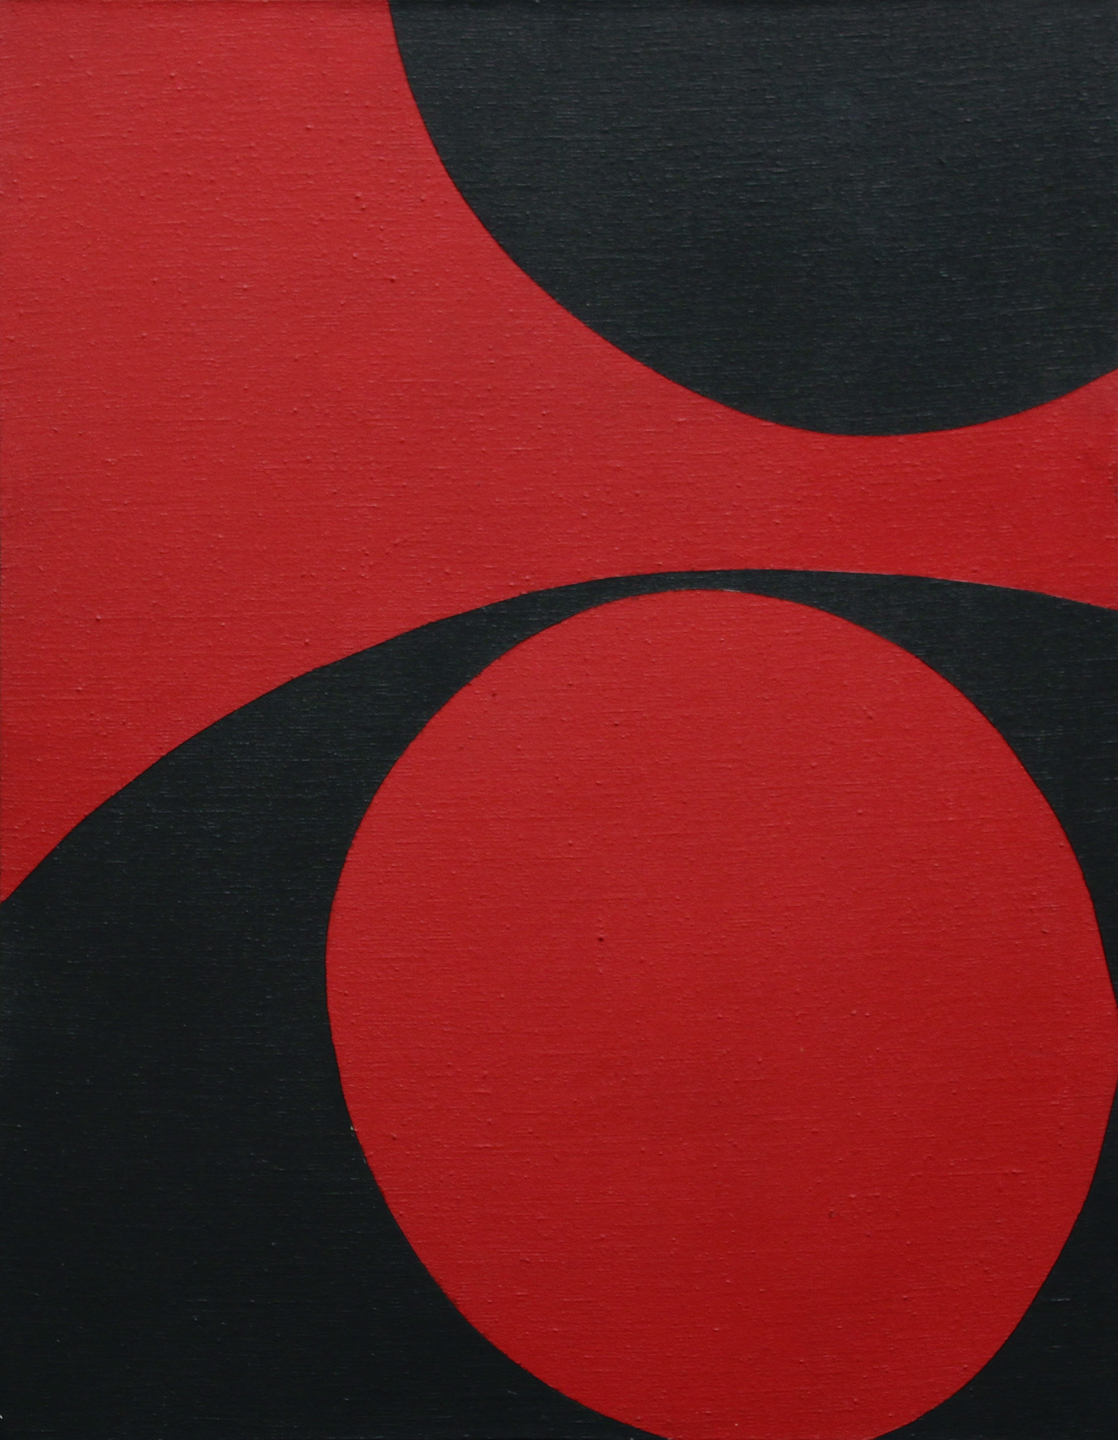 June Harwood  (1933-2015)  Colorform Series (Red & Black) , 1965 oil on canvas 27 x 21 inches; 68.6 x 53.3 centimeters